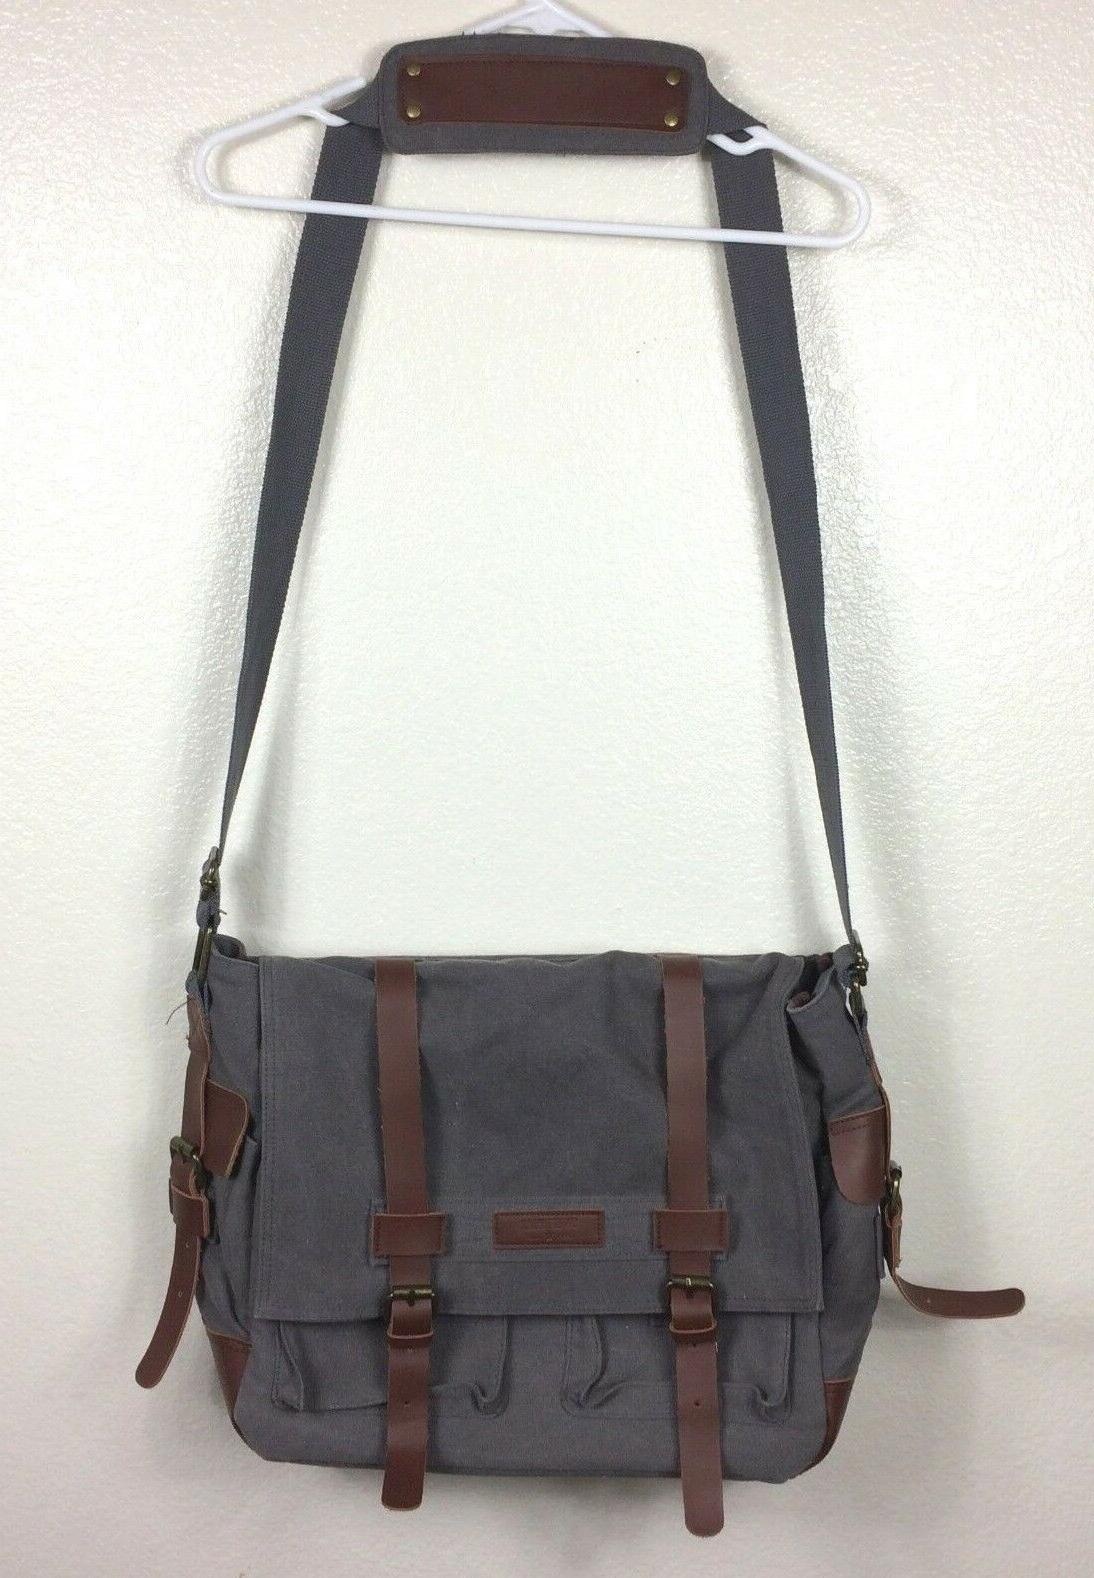 Sweetbriar Classic Laptop Messenger Bag Gray Canvas Leather